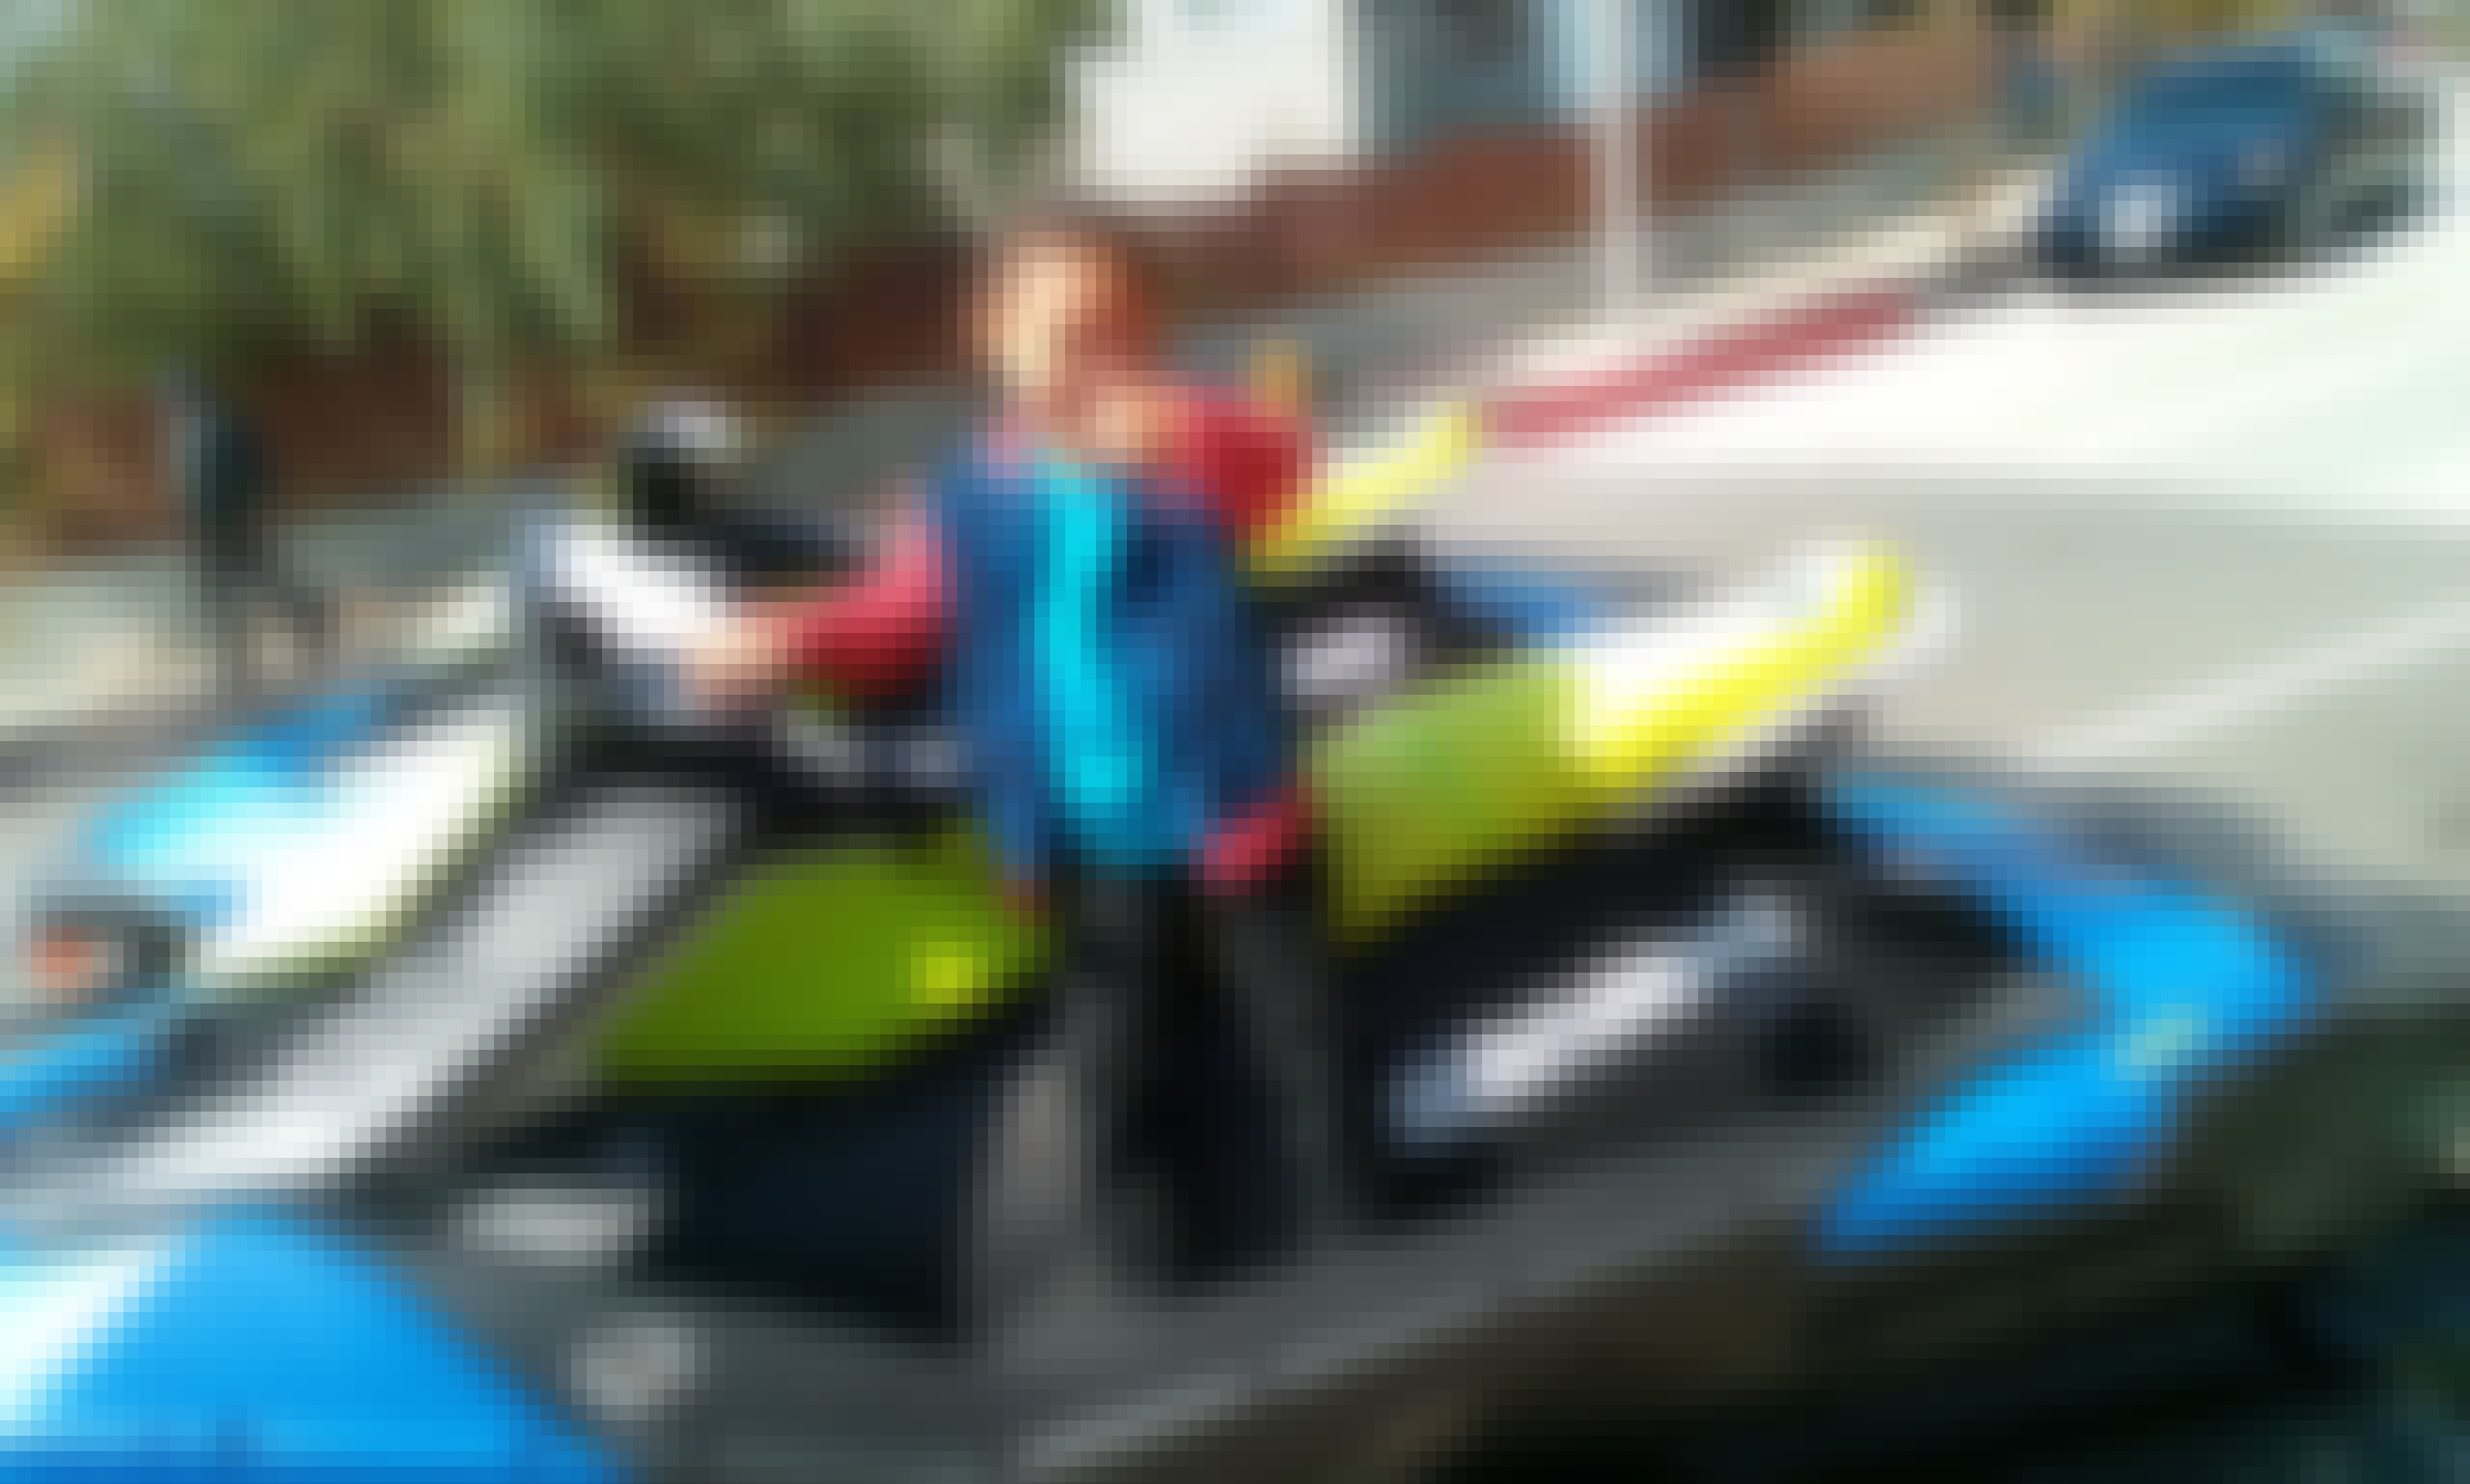 NEW Seadoo Jetskis for Rent! Time to Have some Fun in the Sun